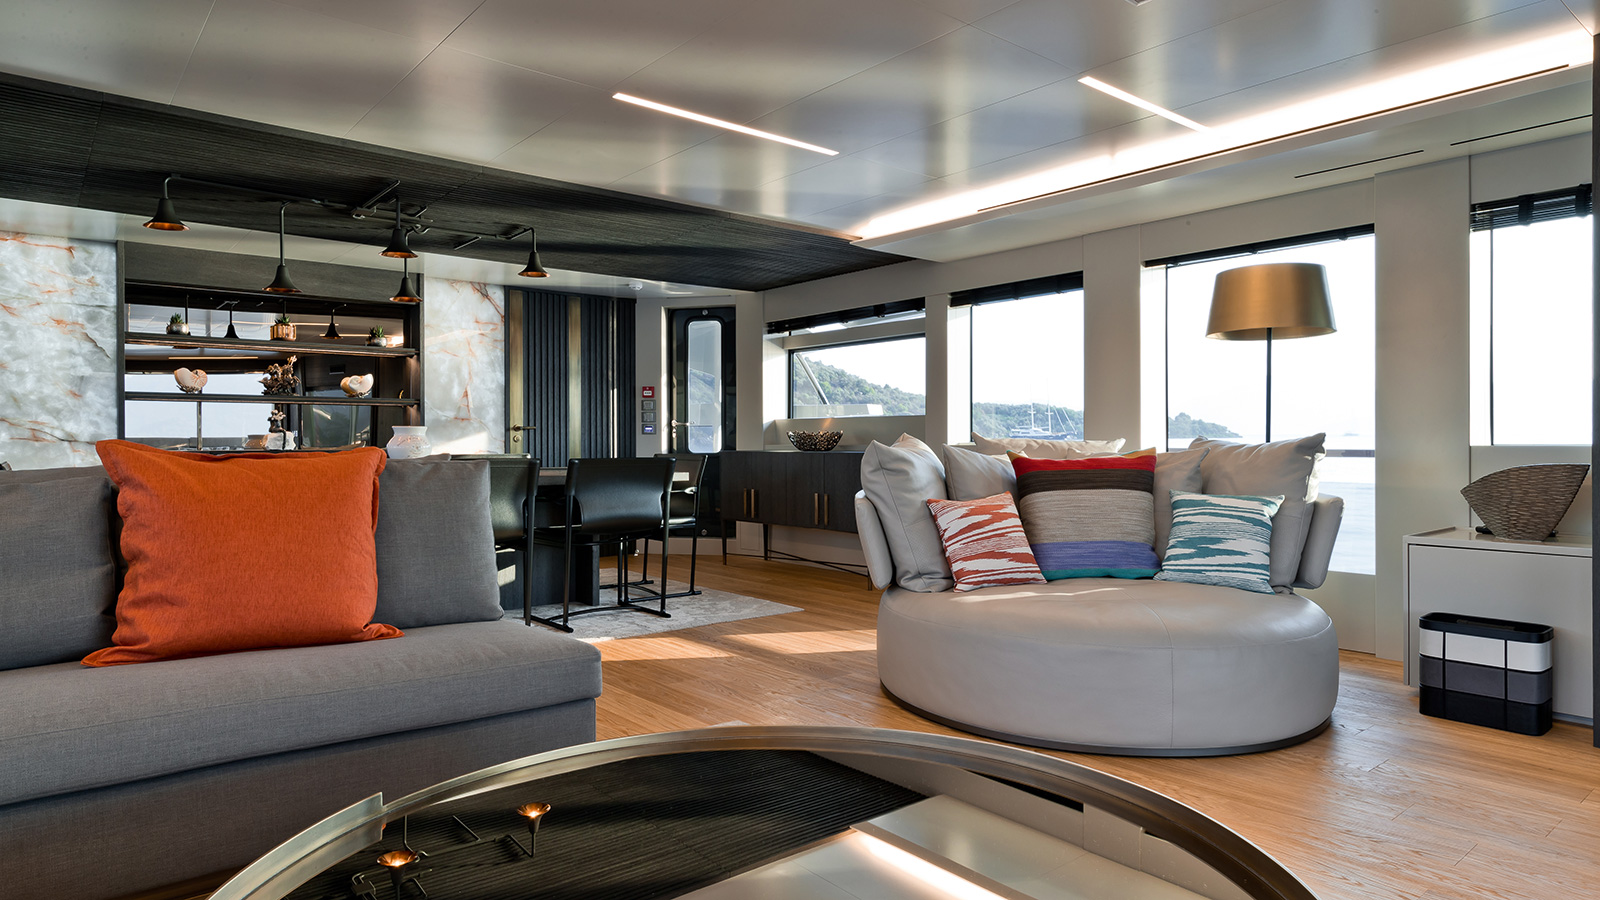 the-saloon-of-the-numarine-32xp-yacht-marla-credit-jeff-brown-breed-media